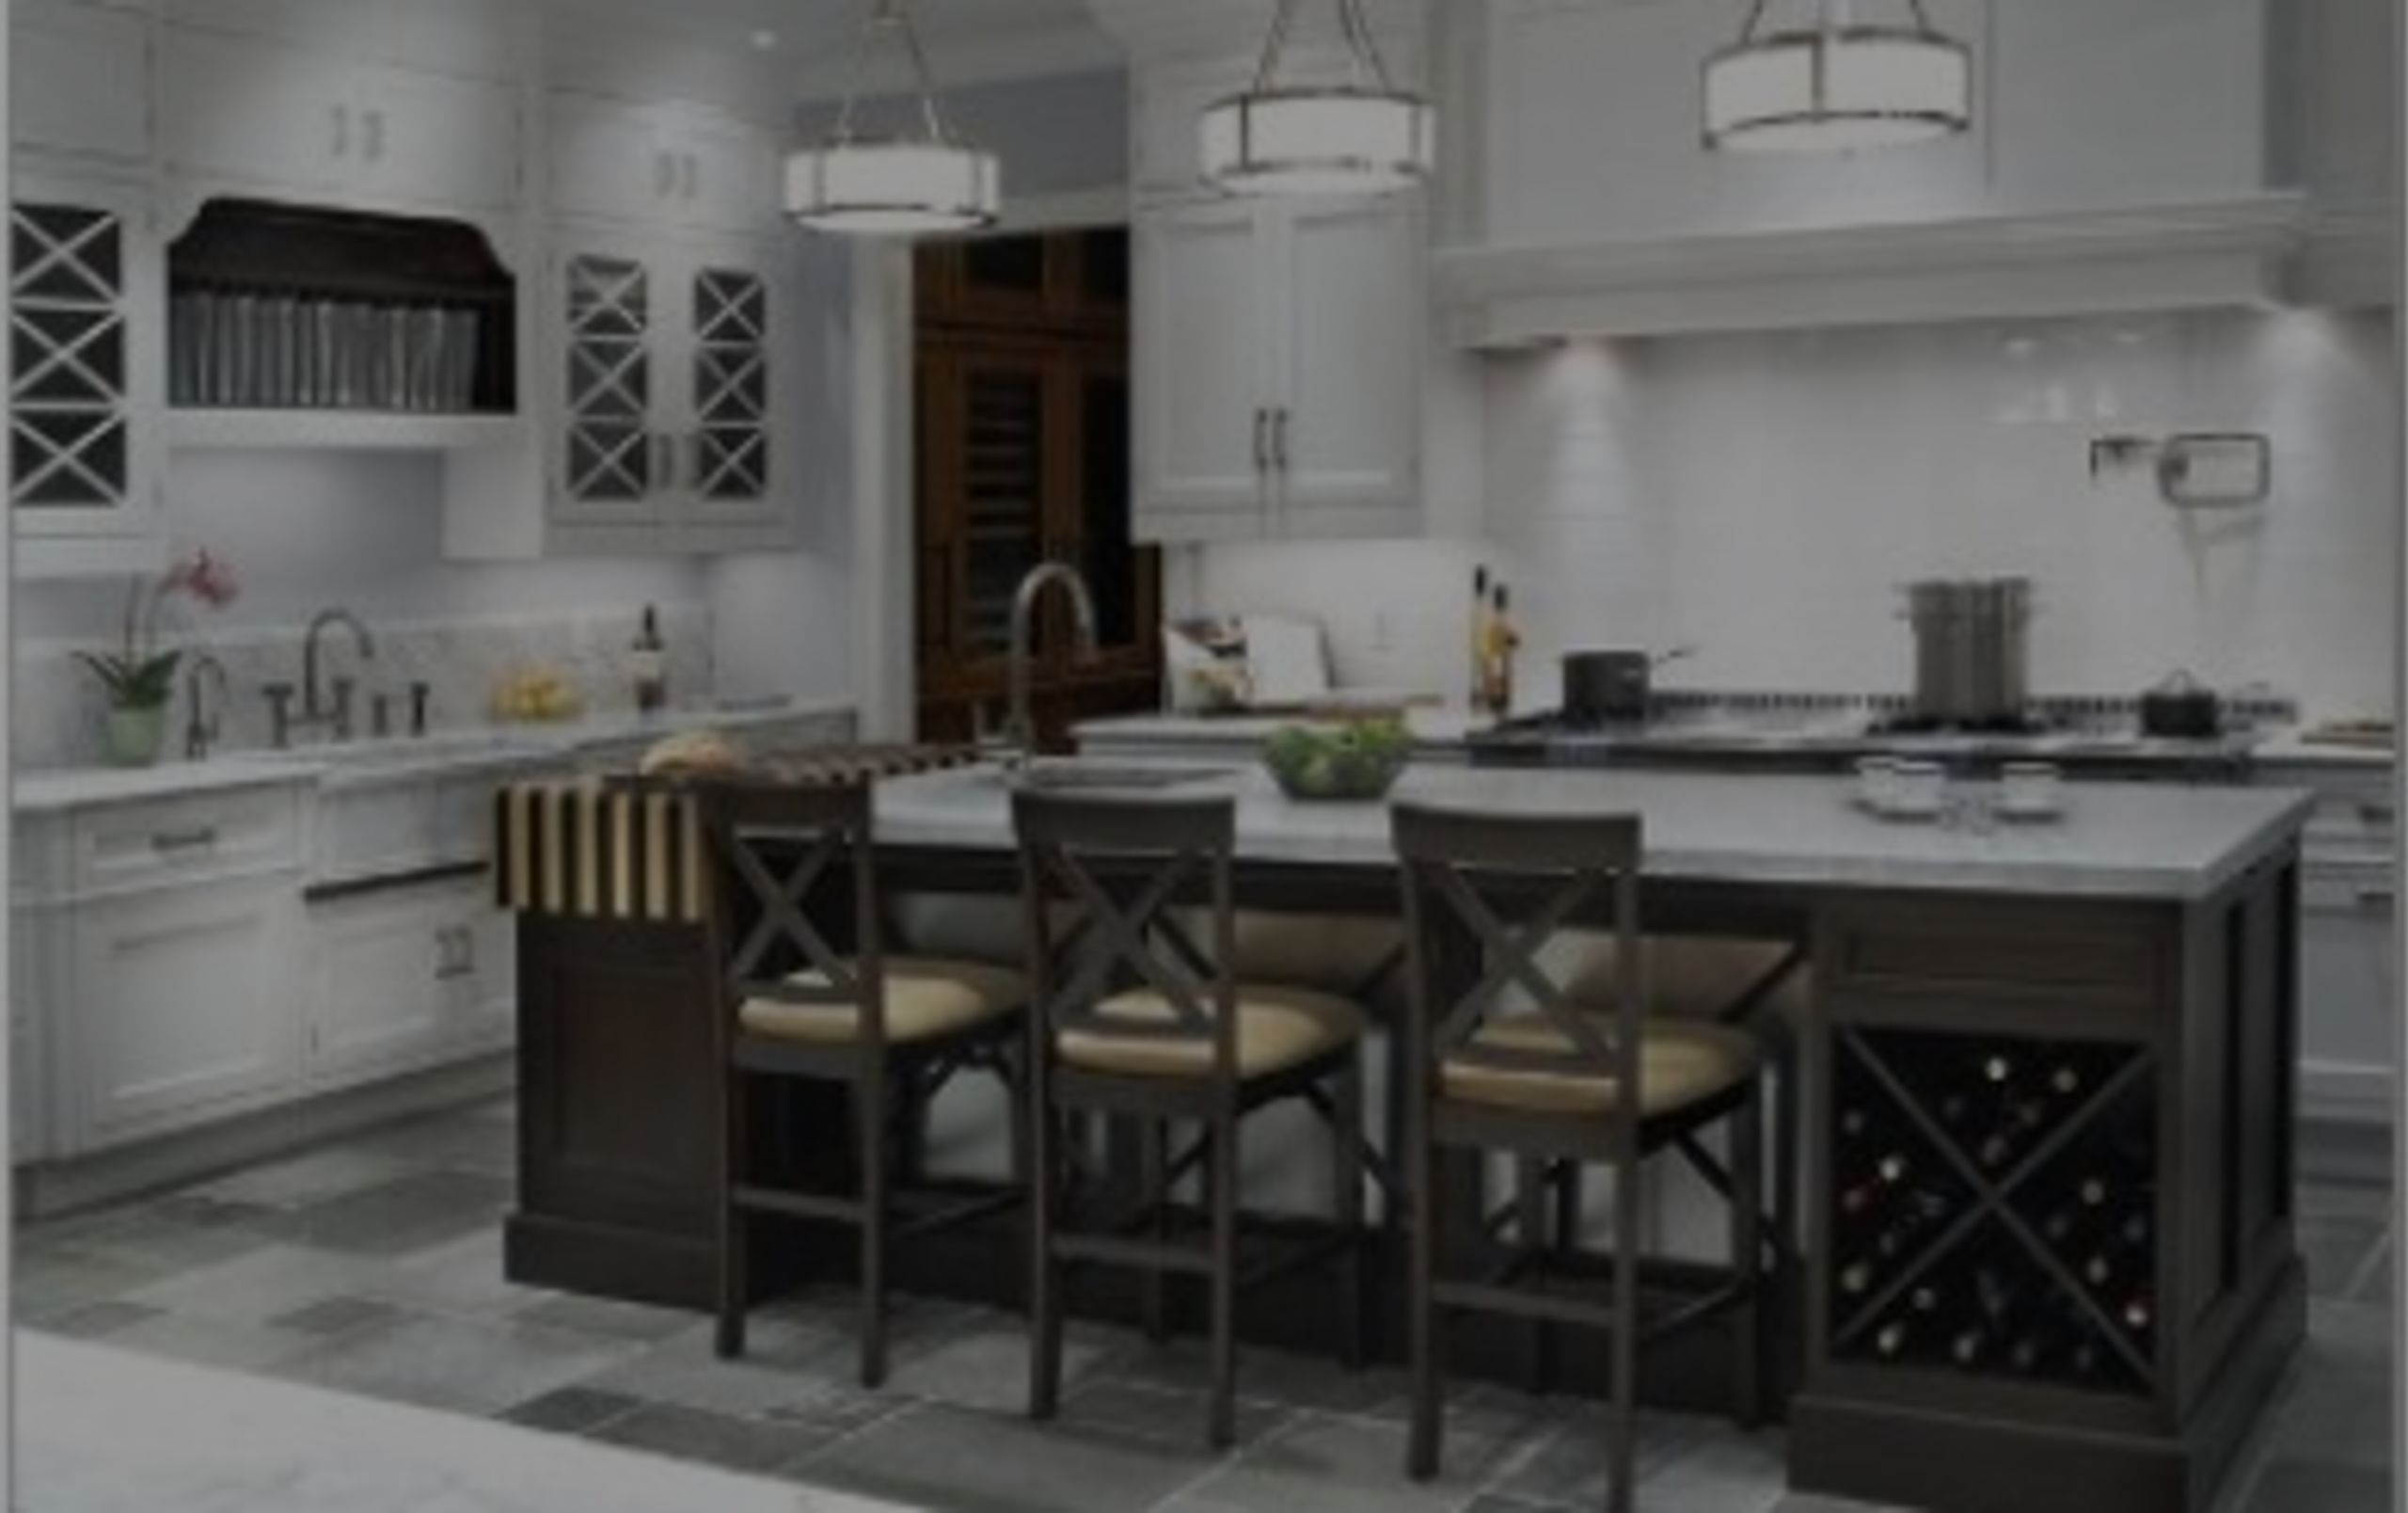 Herrick Home Report: New Construction in Reading MA